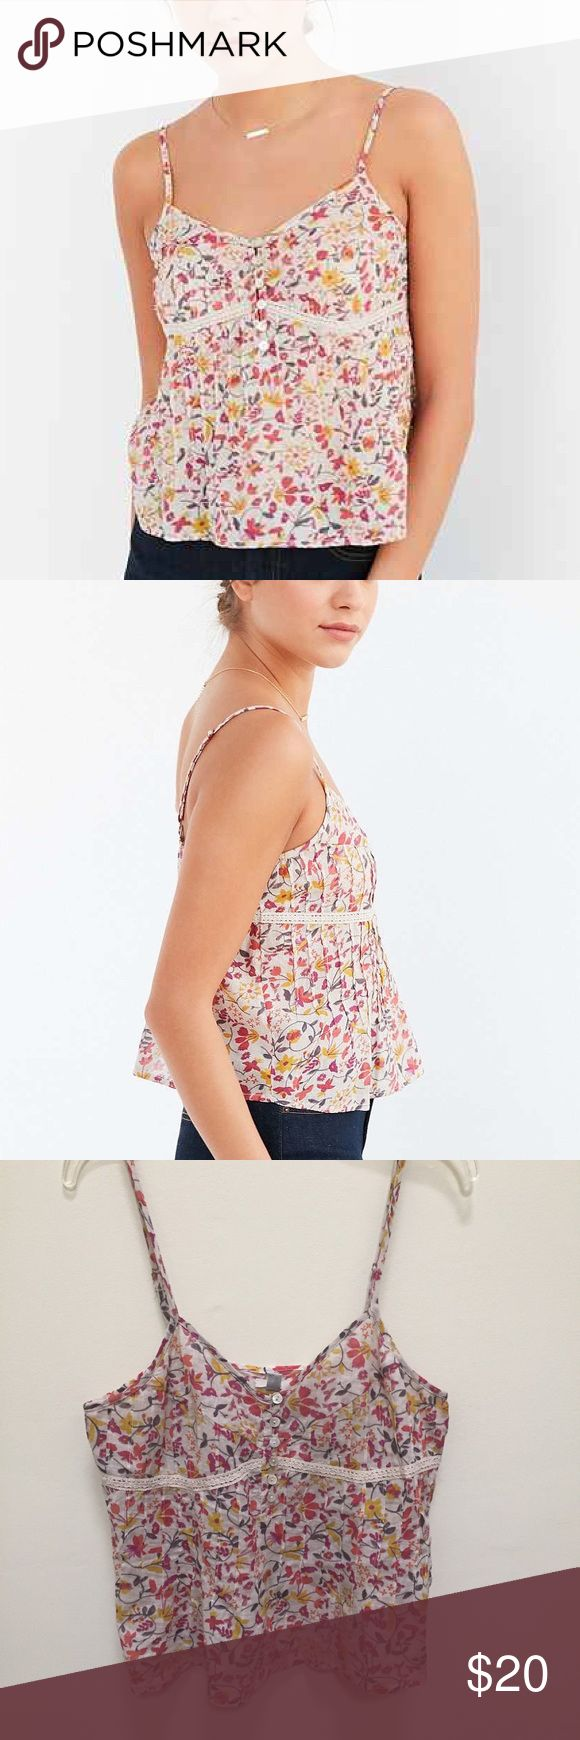 🌸🌻Supercute Pincuted Jenni Cami 🌻🌸 🌻Hipster Floral Jenni Cami by Urban Outfitters brand Ecote!🌻 Material: 100% Cotton! Comes with Urban Outfitters gift box! Makes a great gift for your boho flower girl🌺🌸💐🌻 Ecote Tops Camisoles